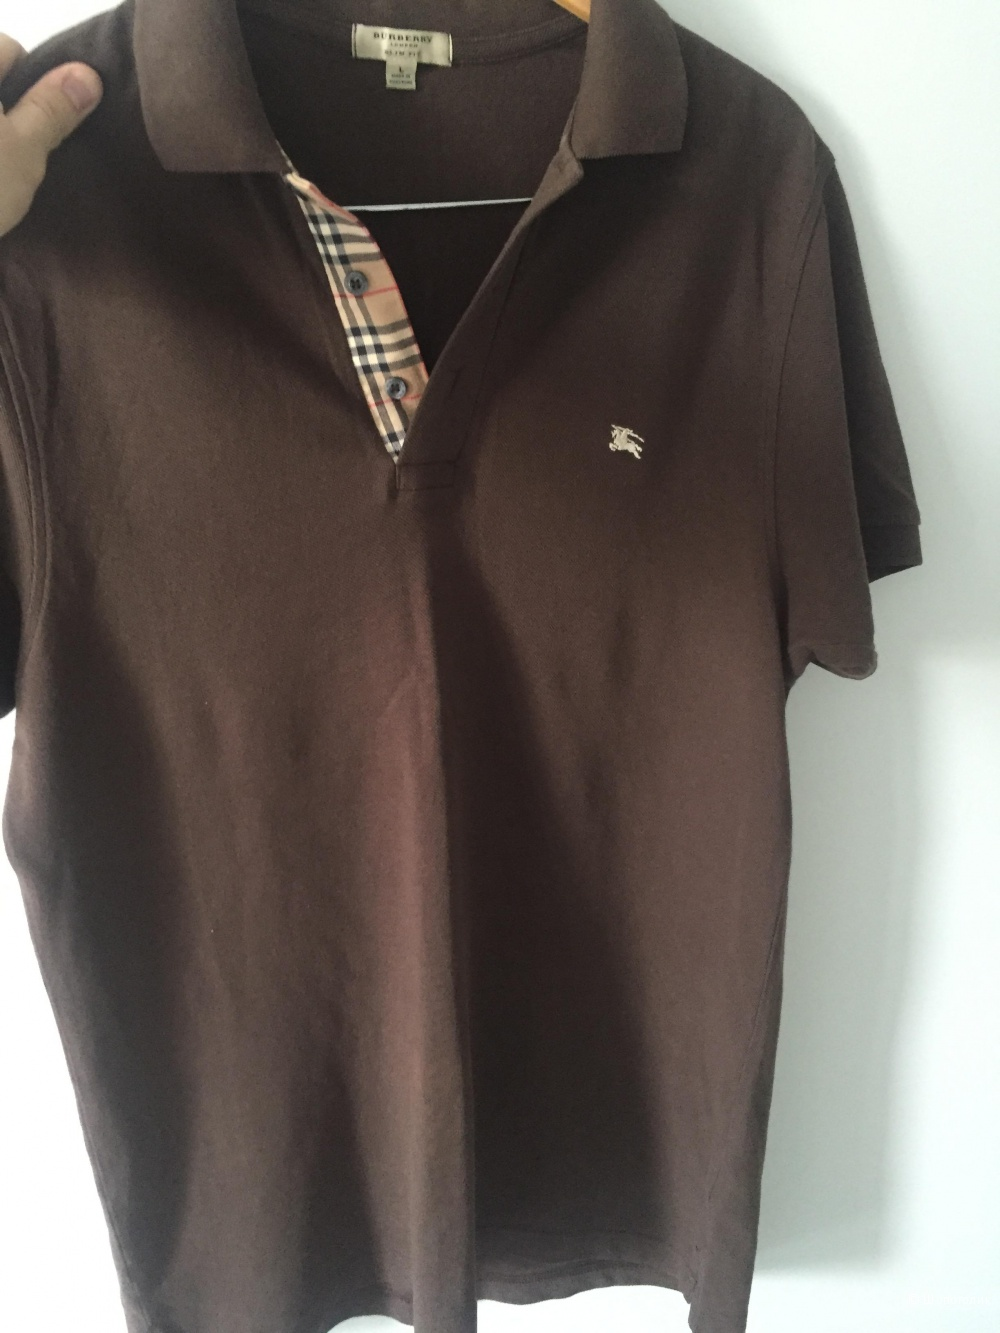 Burberry London Polo, brown color, size L